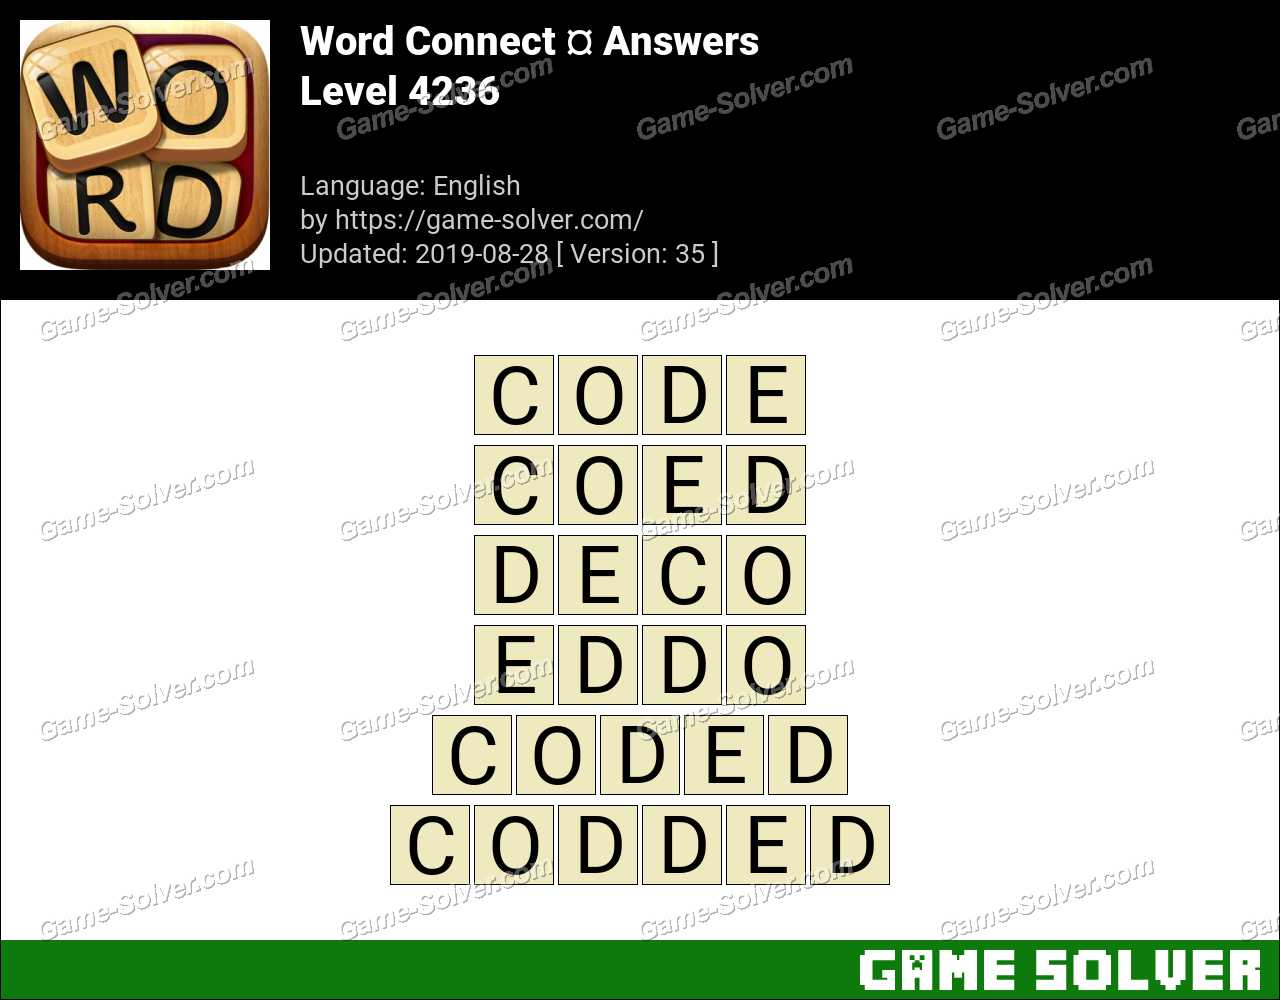 Word Connect Level 4236 Answers